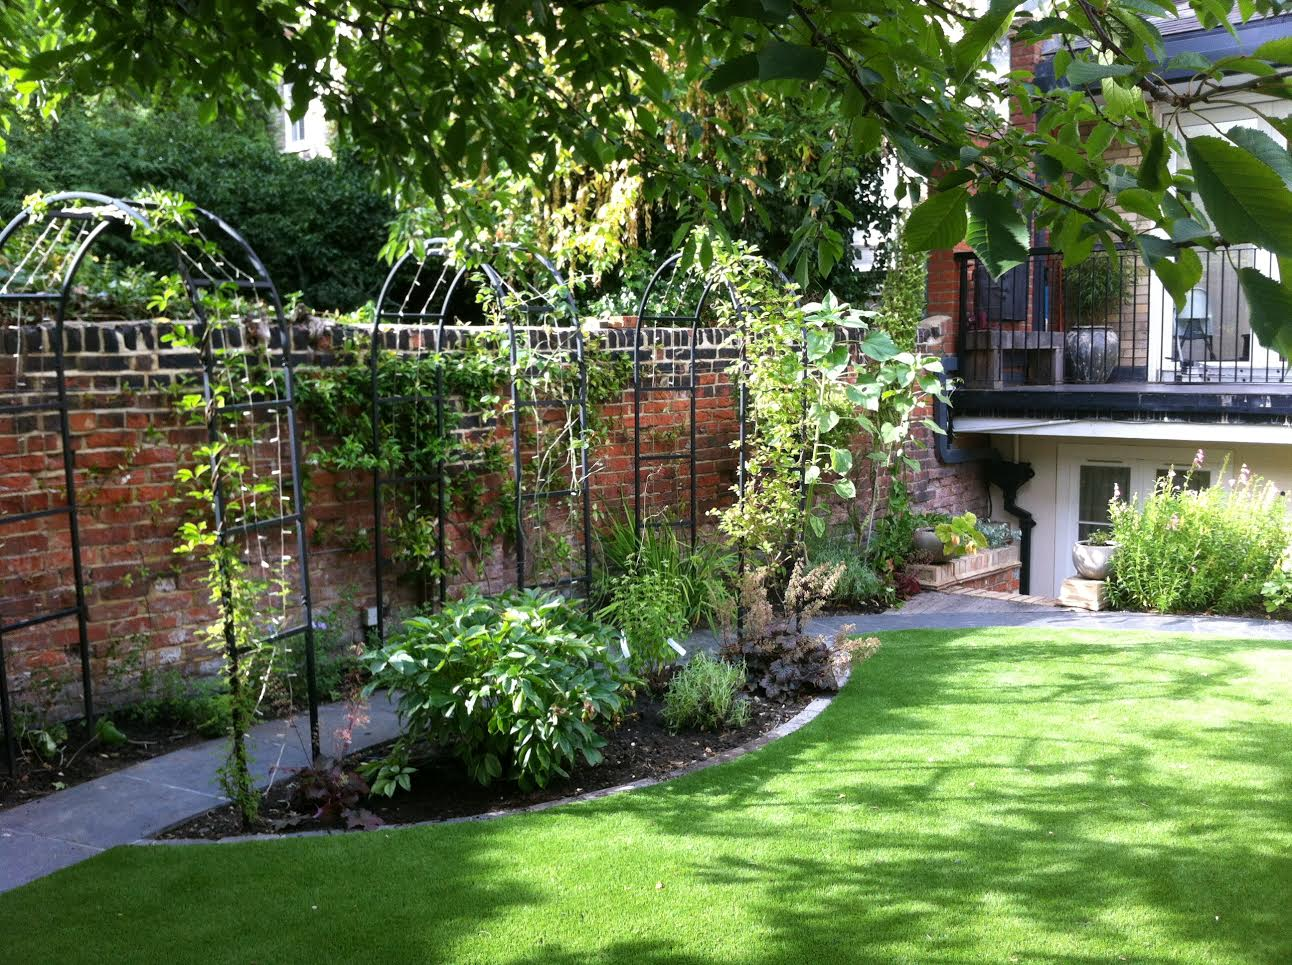 Romantic Garden Design Hampstead - Celine David